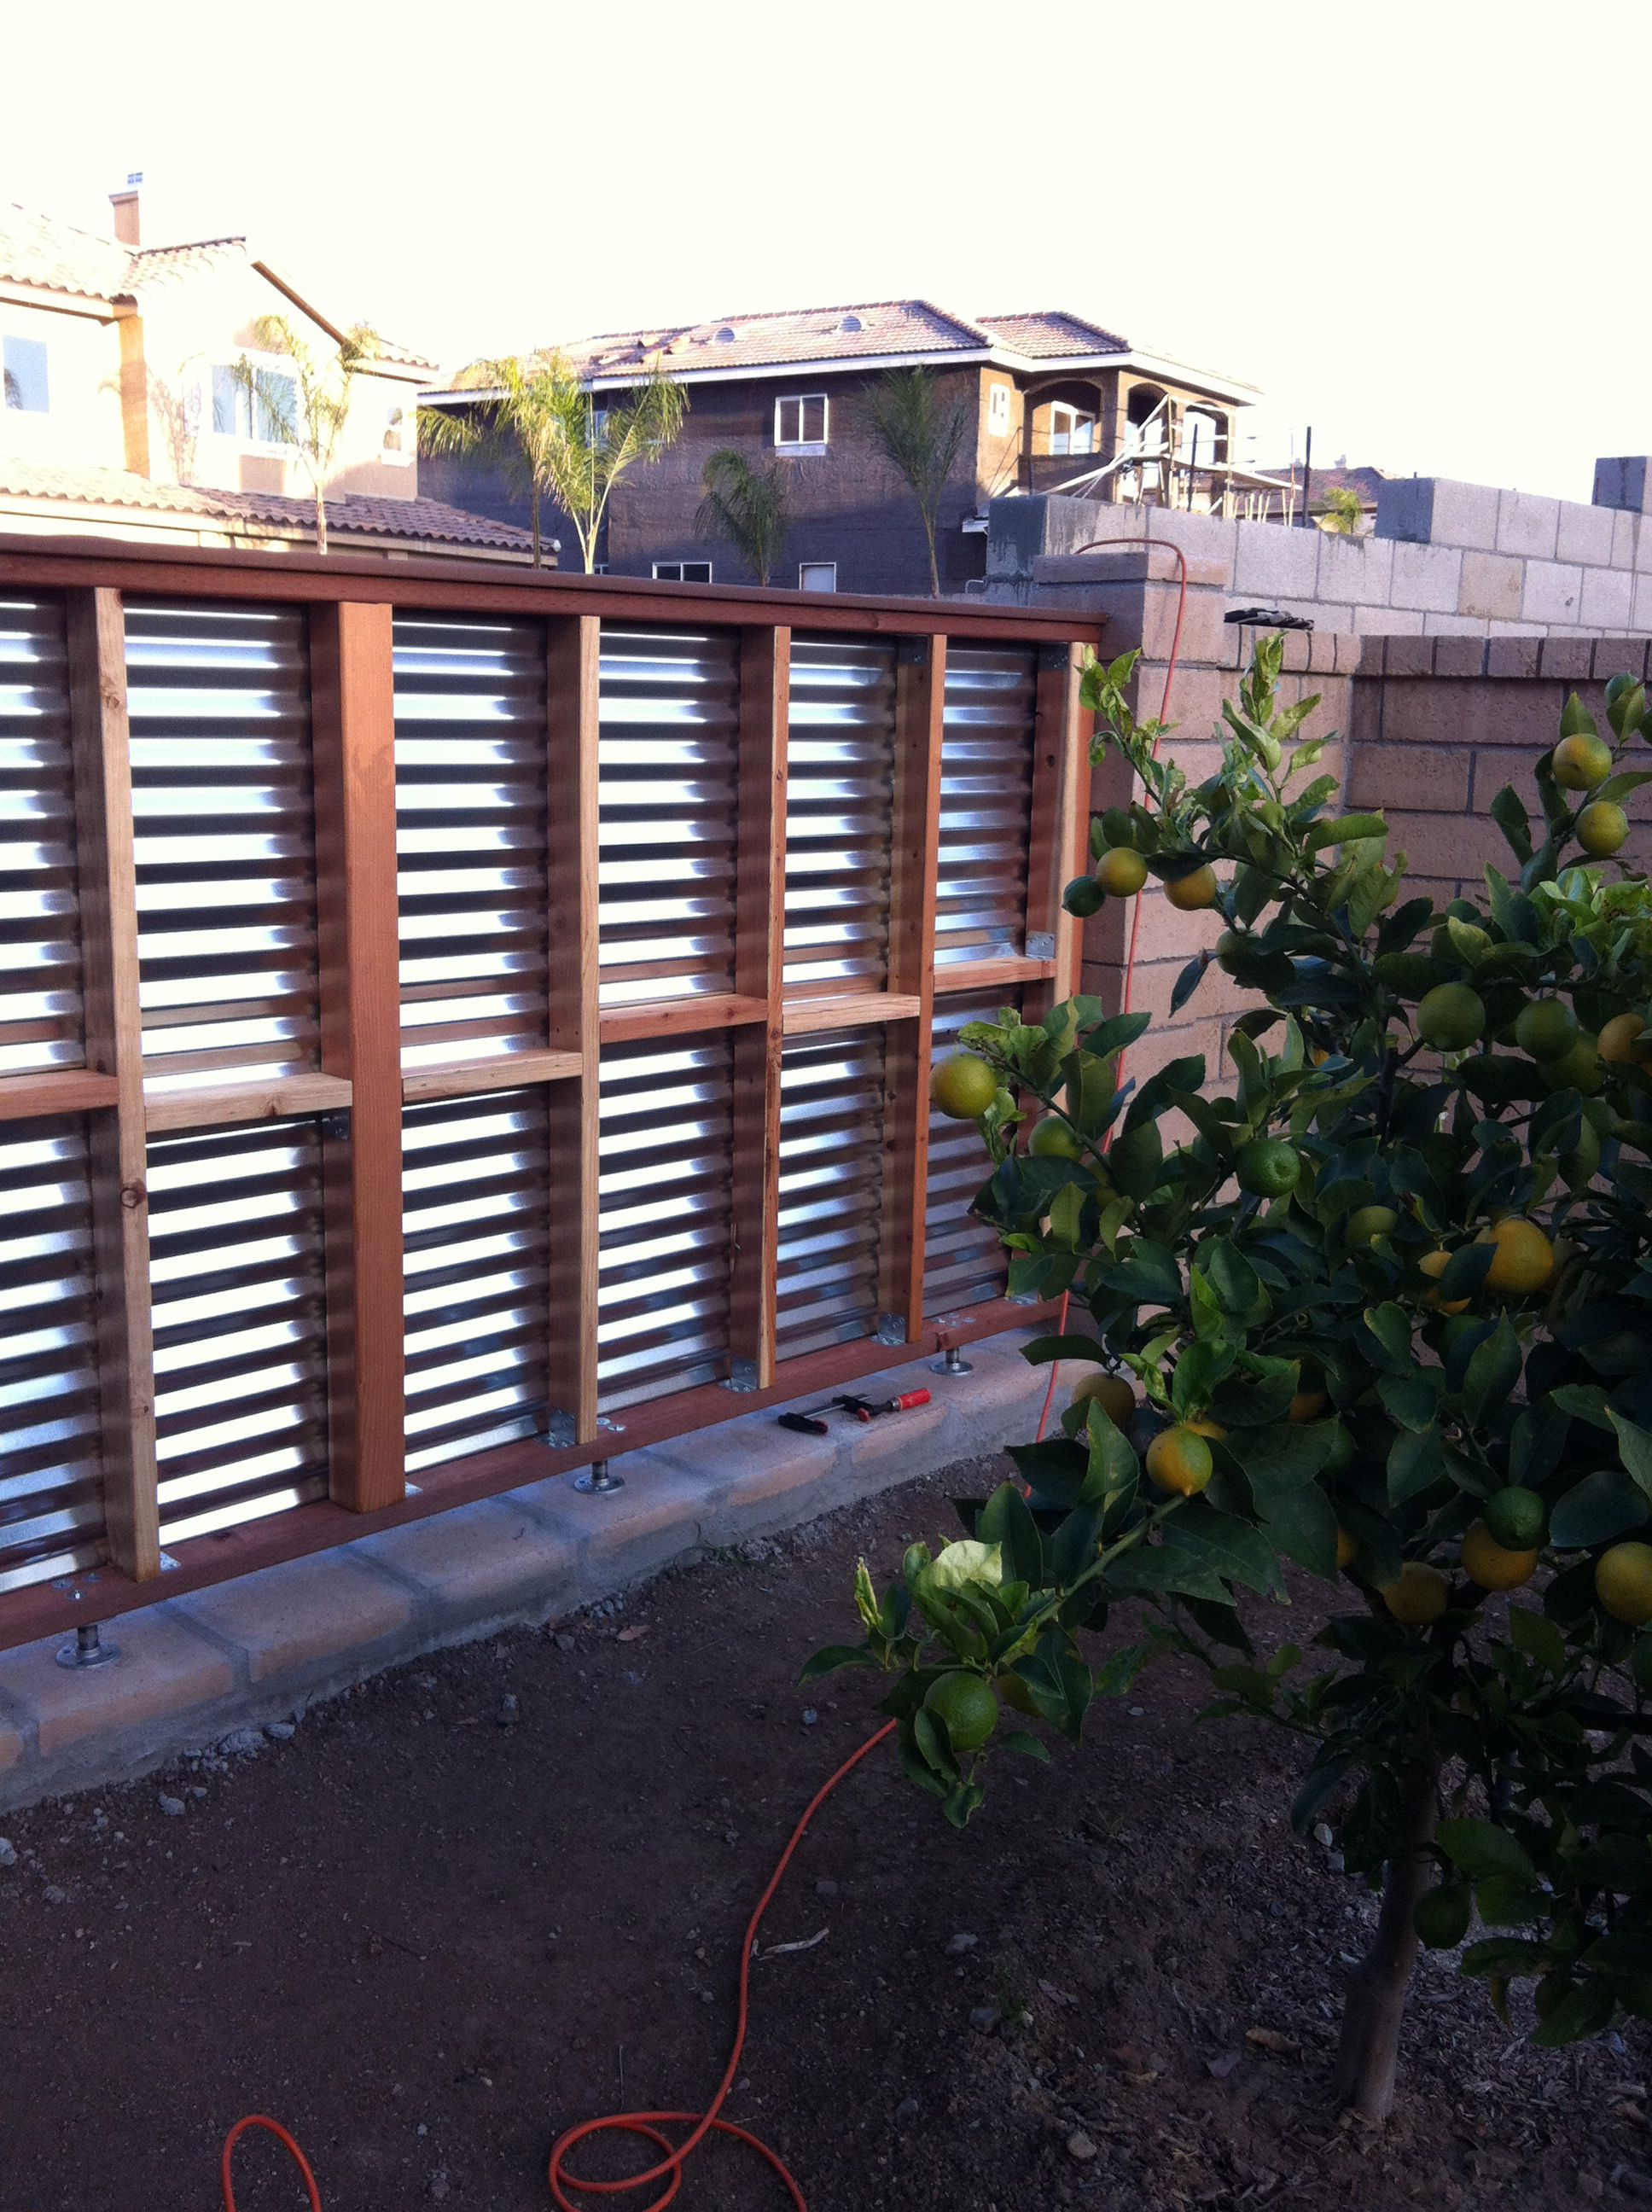 Diy Corrugated Metal Fences: DIY Fence Section Made Of Wood Frame And Corrugated Tin